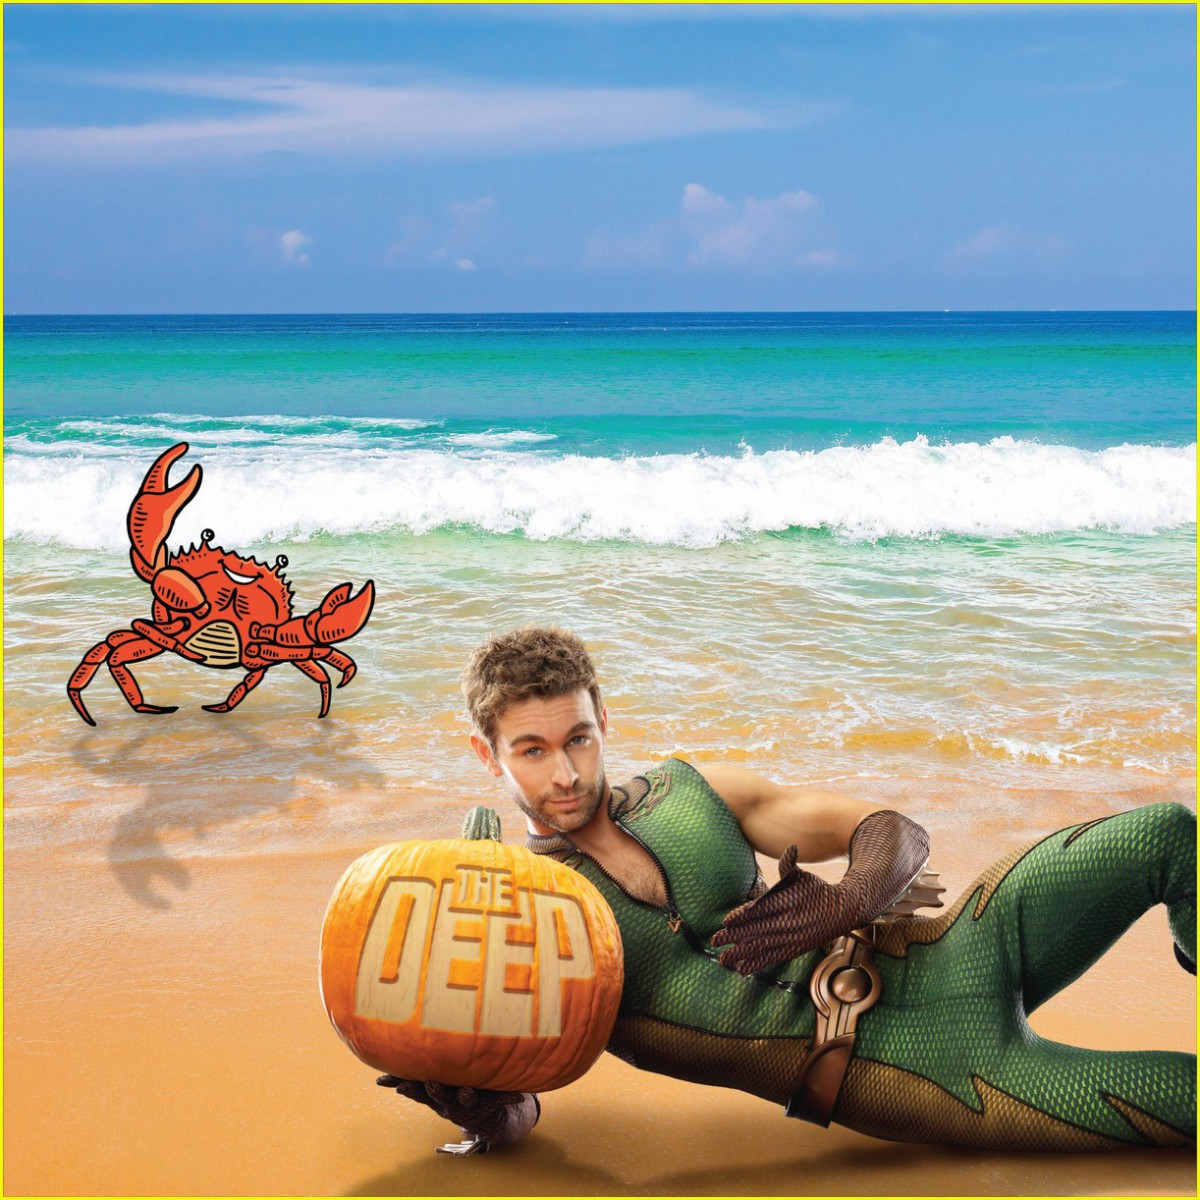 The Deep Calendar - October 2019 (featuring Chace Crawford from The Boys)